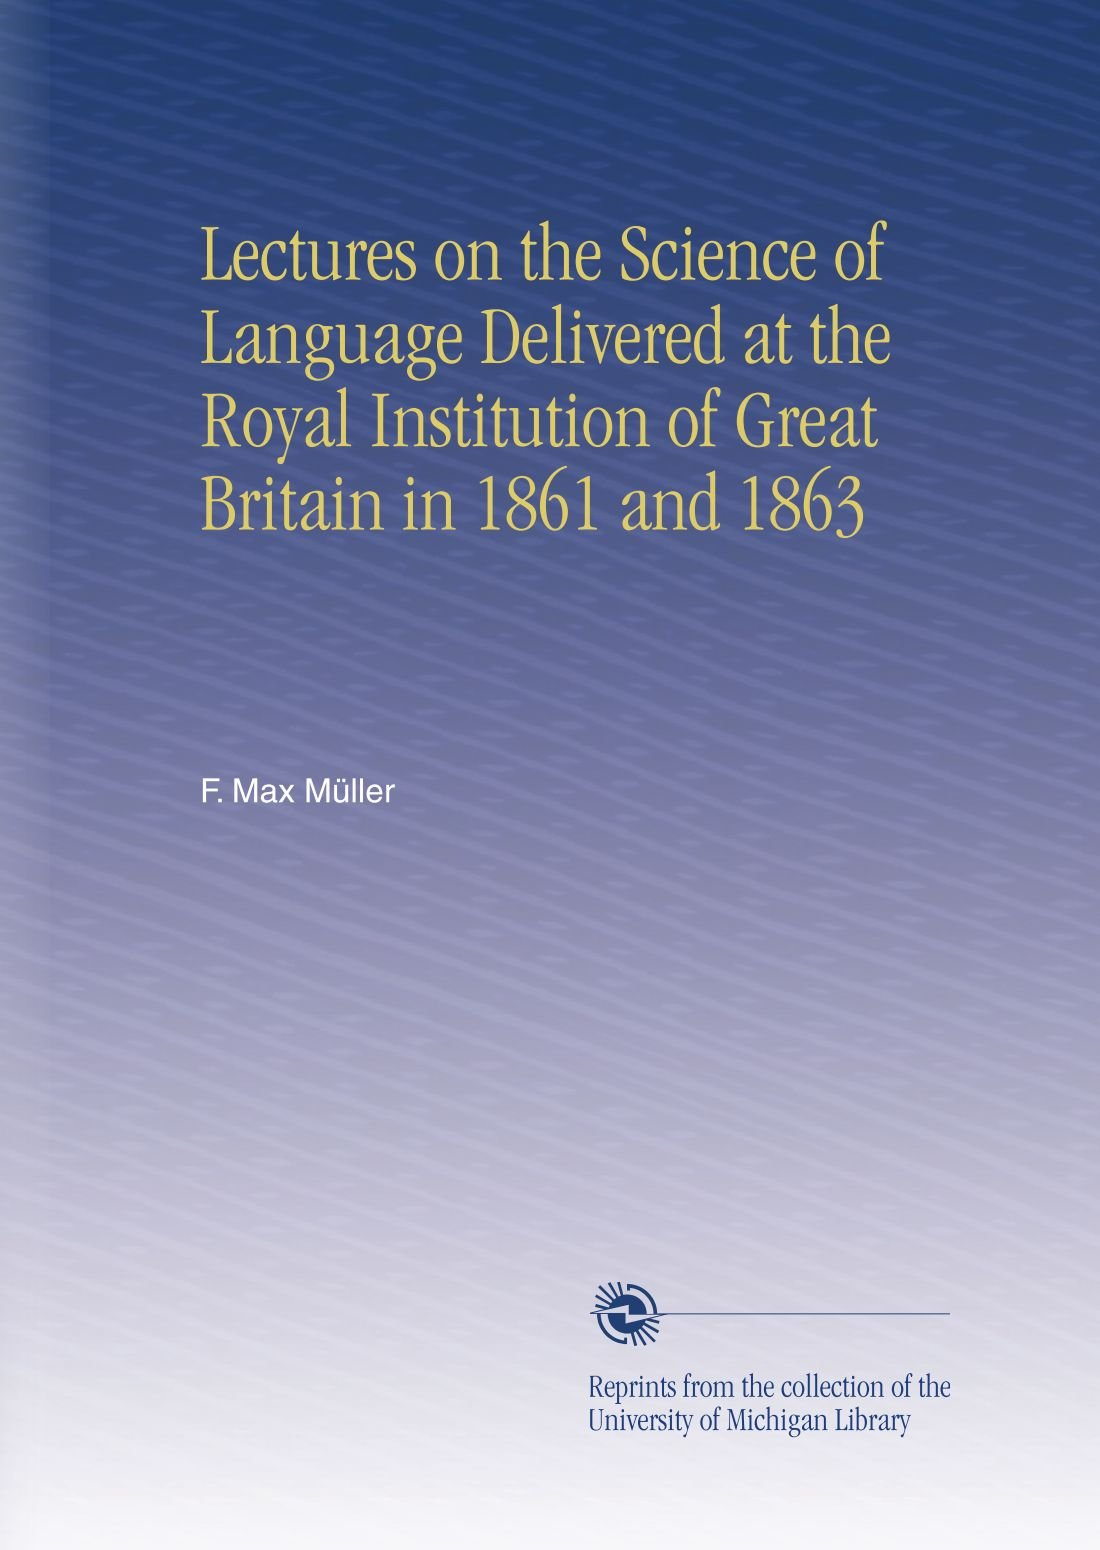 Lectures on the Science of Language Delivered at the Royal Institution of Great Britain in 1861 and 1863